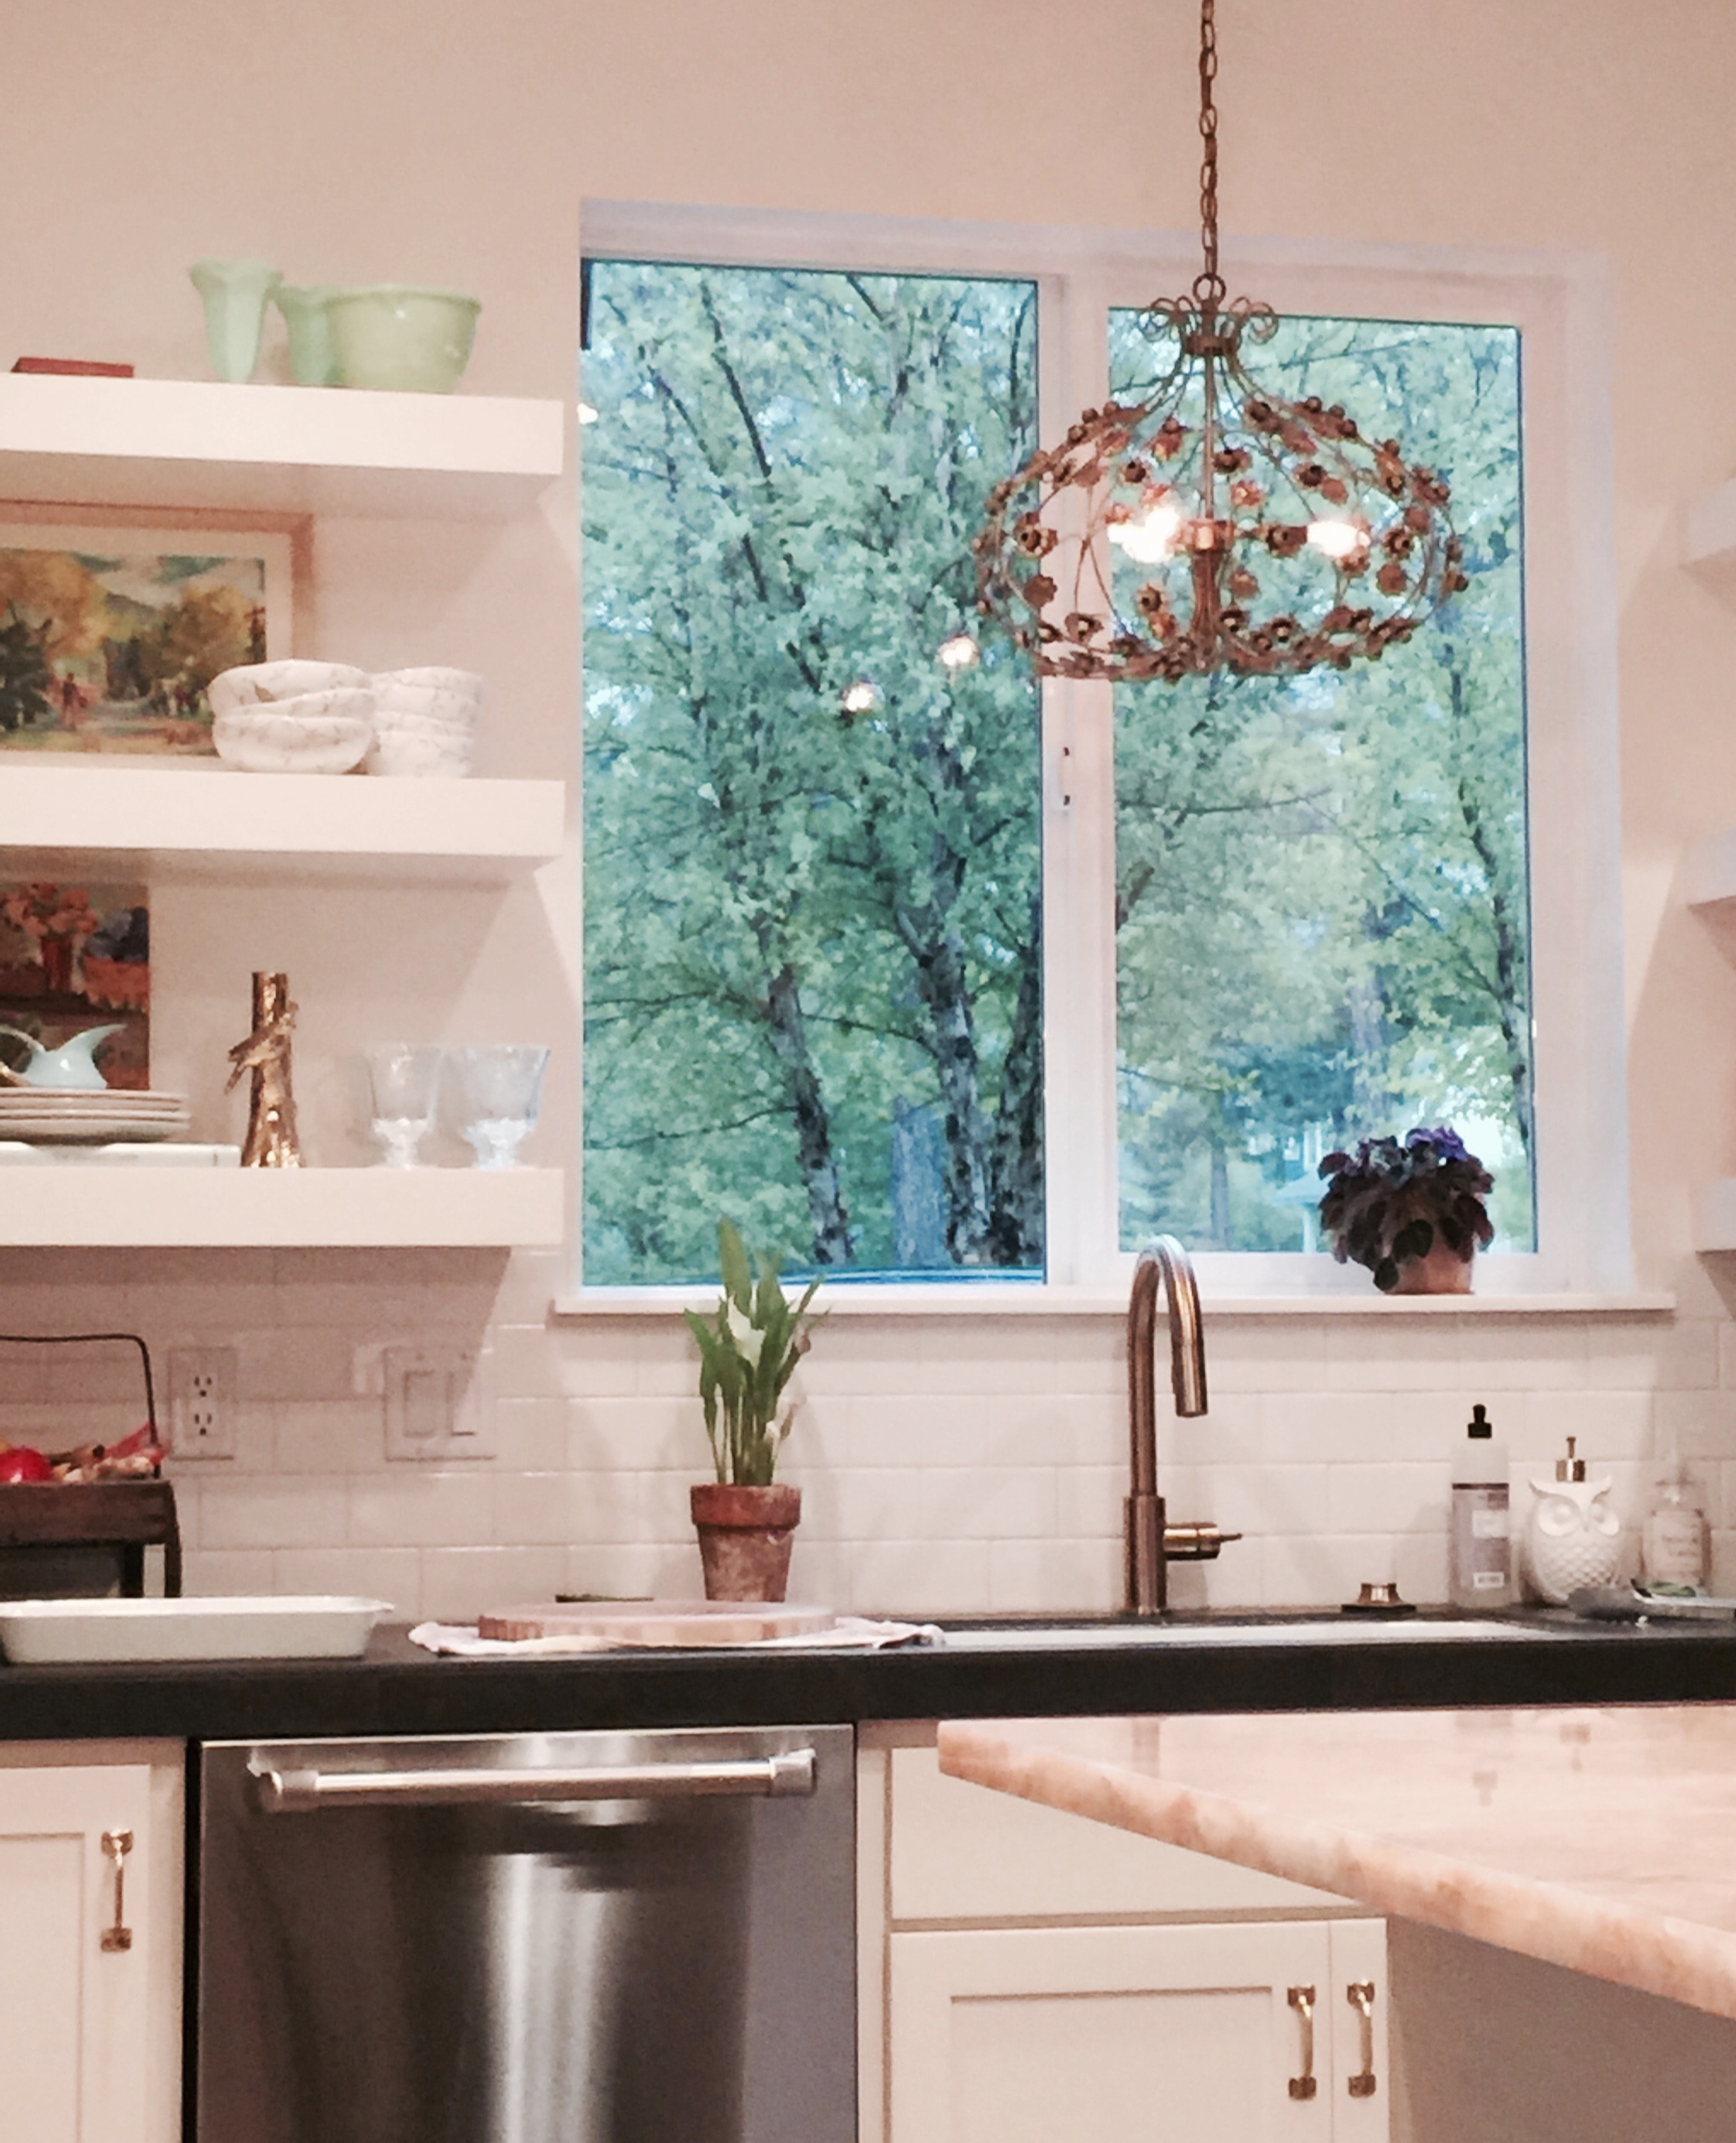 My kitchen: featuring subway tile, onyx island, antique berry basket, vintage Italian pendant light, and  Carrie Geraci  art.